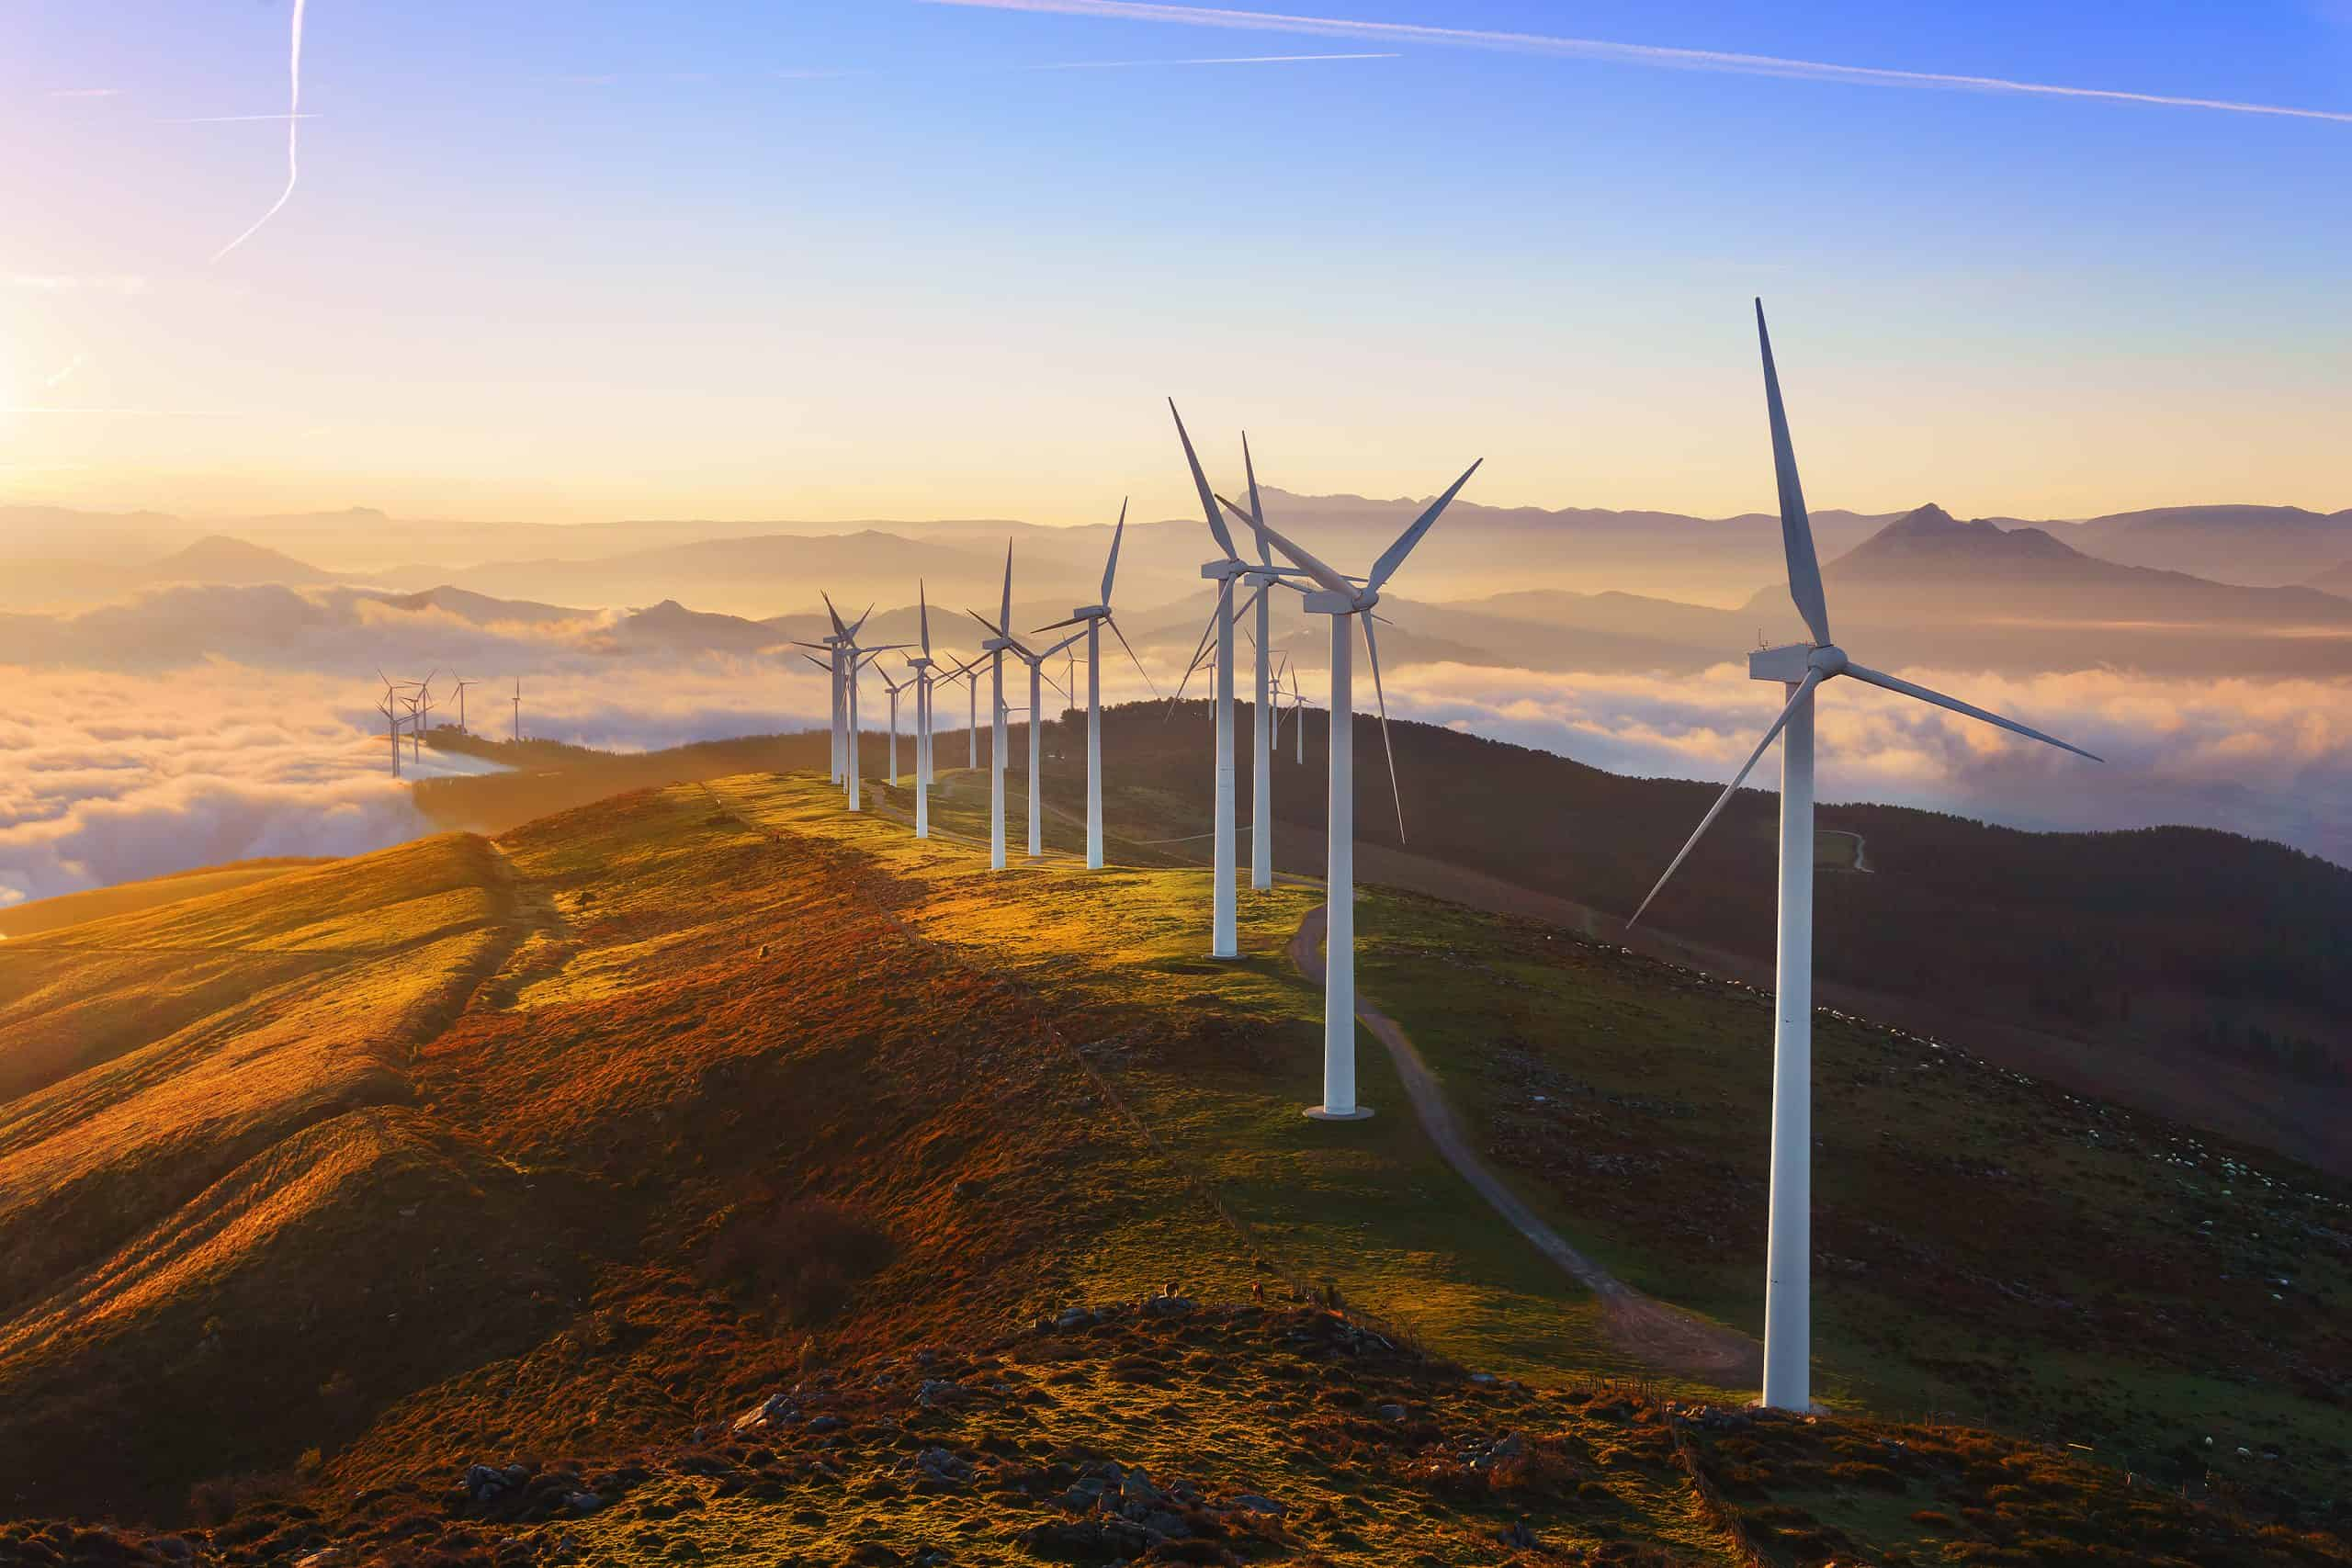 Record Amount of Renewable Energy Consumed in the U.S. in 2020